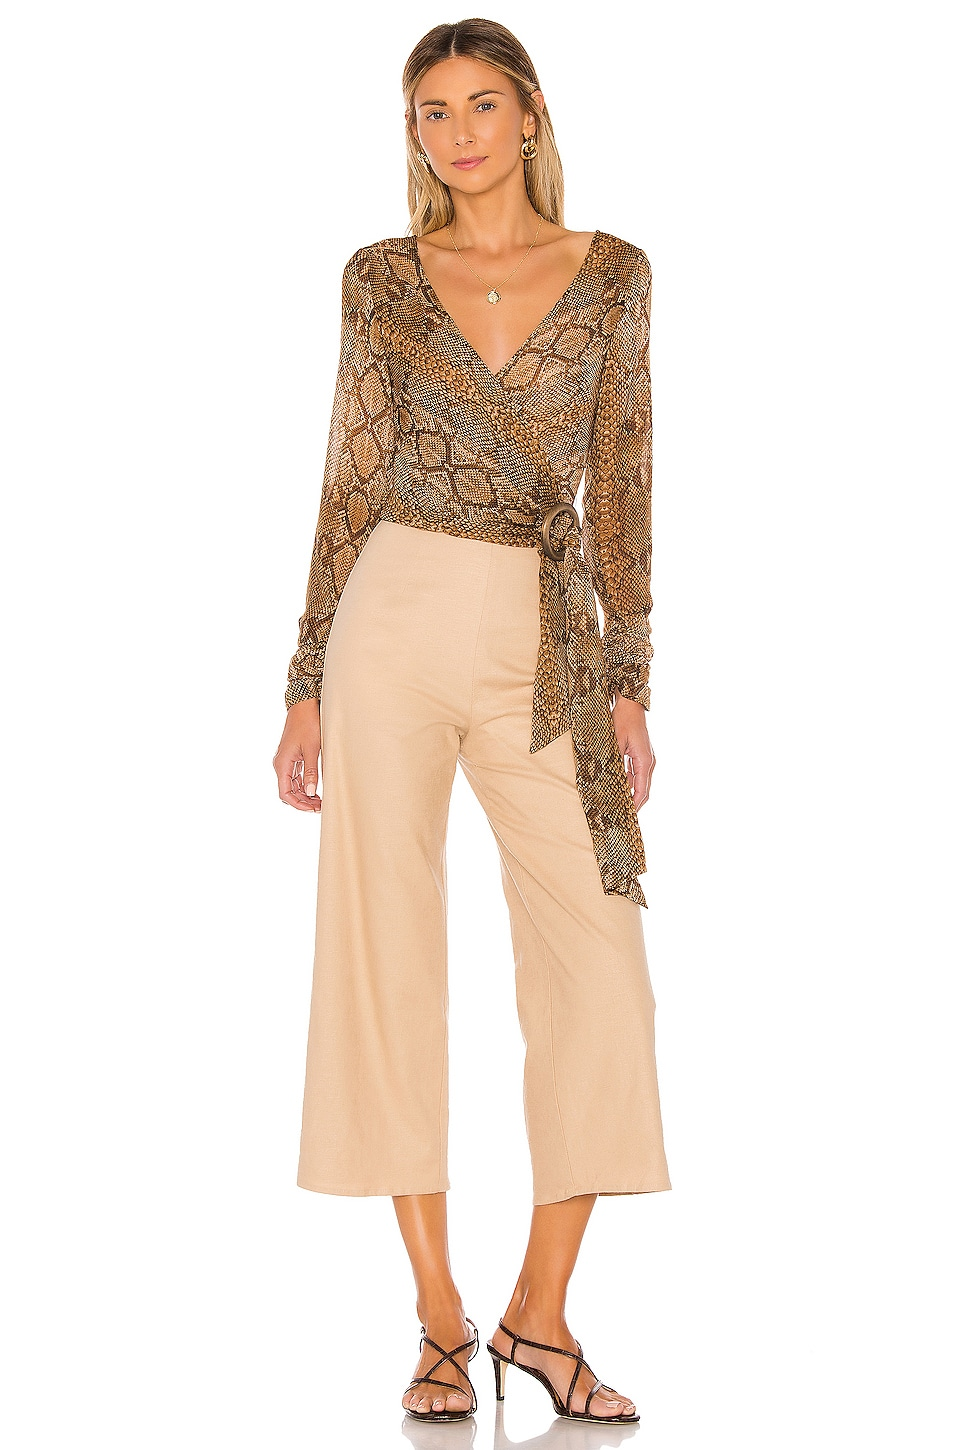 L'Academie The Aman Top in Snake